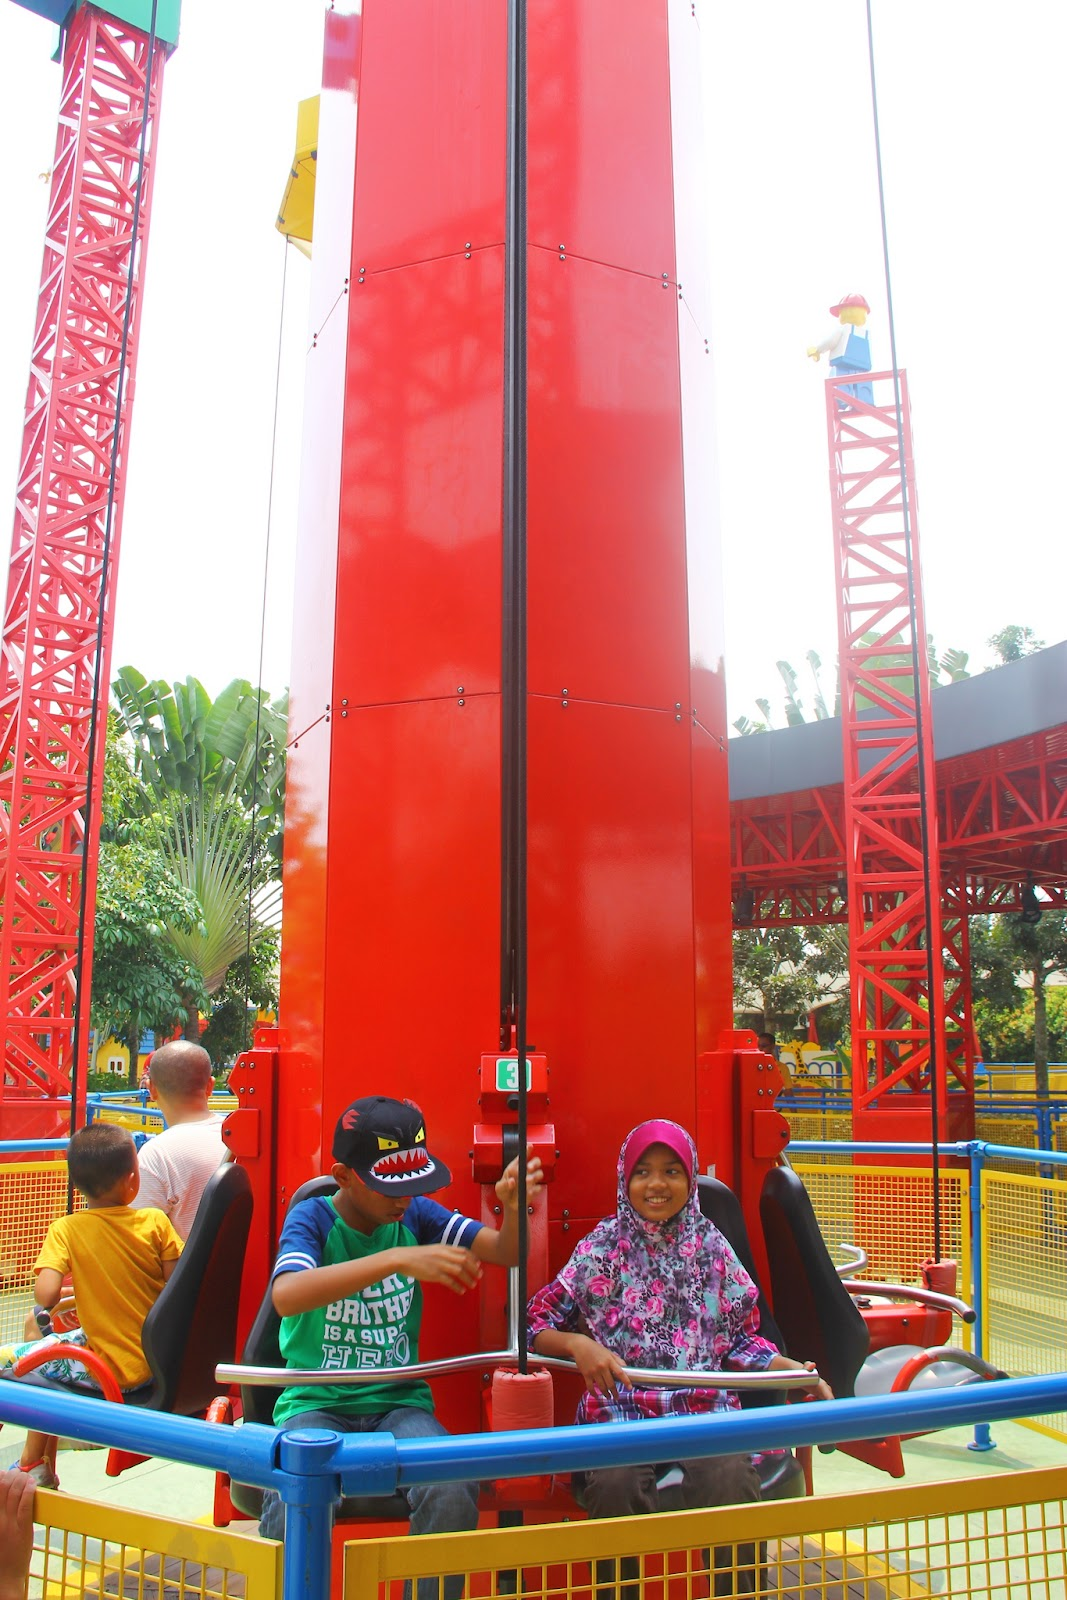 Kids Power Tower